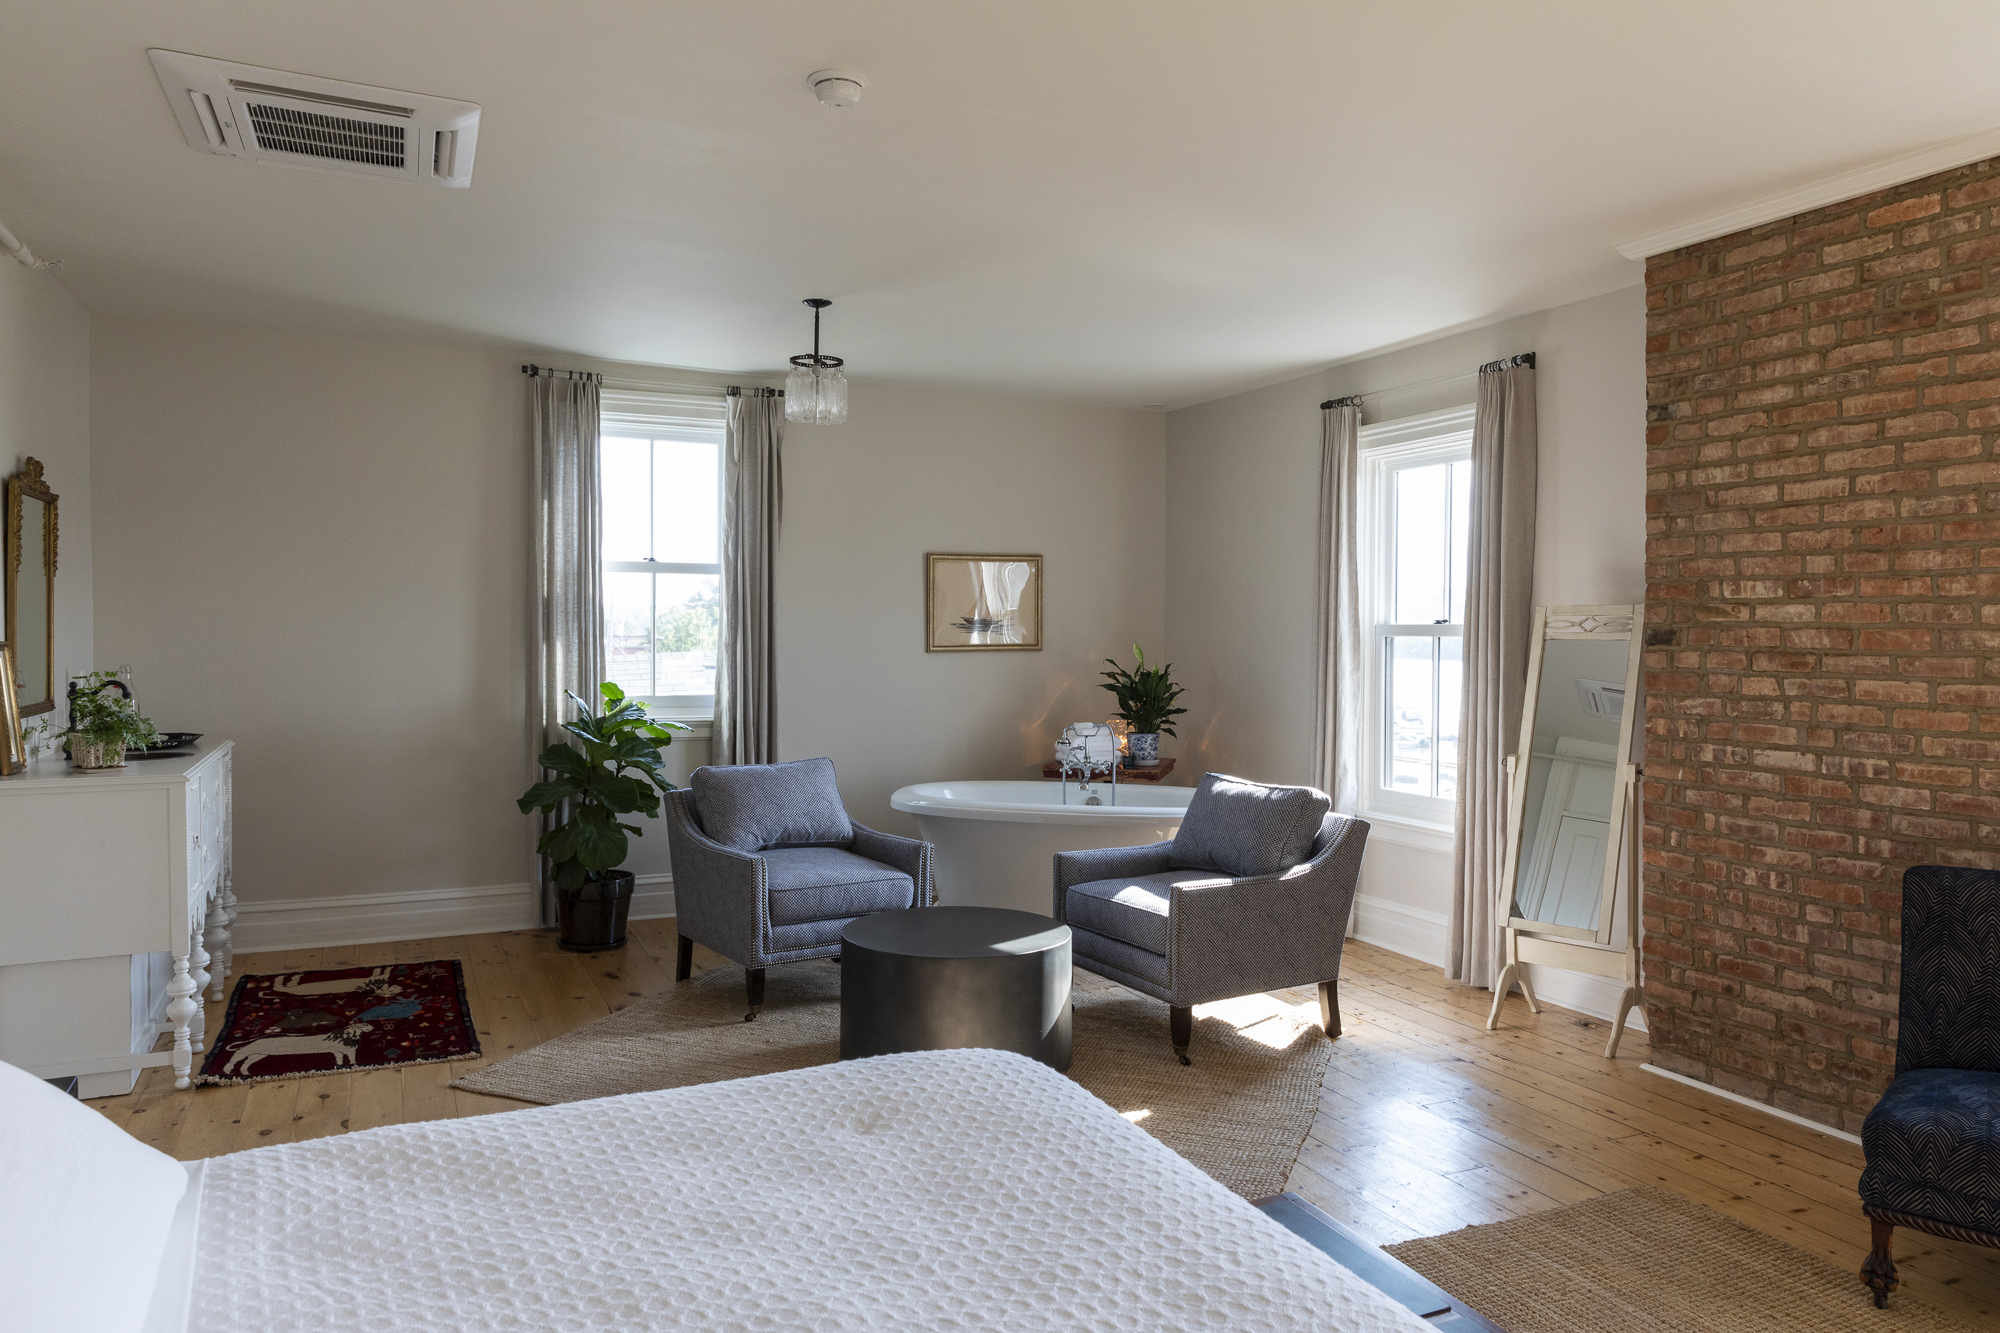 This luxurious third floor suite offers a large living area with soaking tub and antique wet bar, king sized bed and spectacular view of the Hudson River. - 500 sq ftPlease note this room is a 3rd floor walkup$349.00 per night for up to 2 people